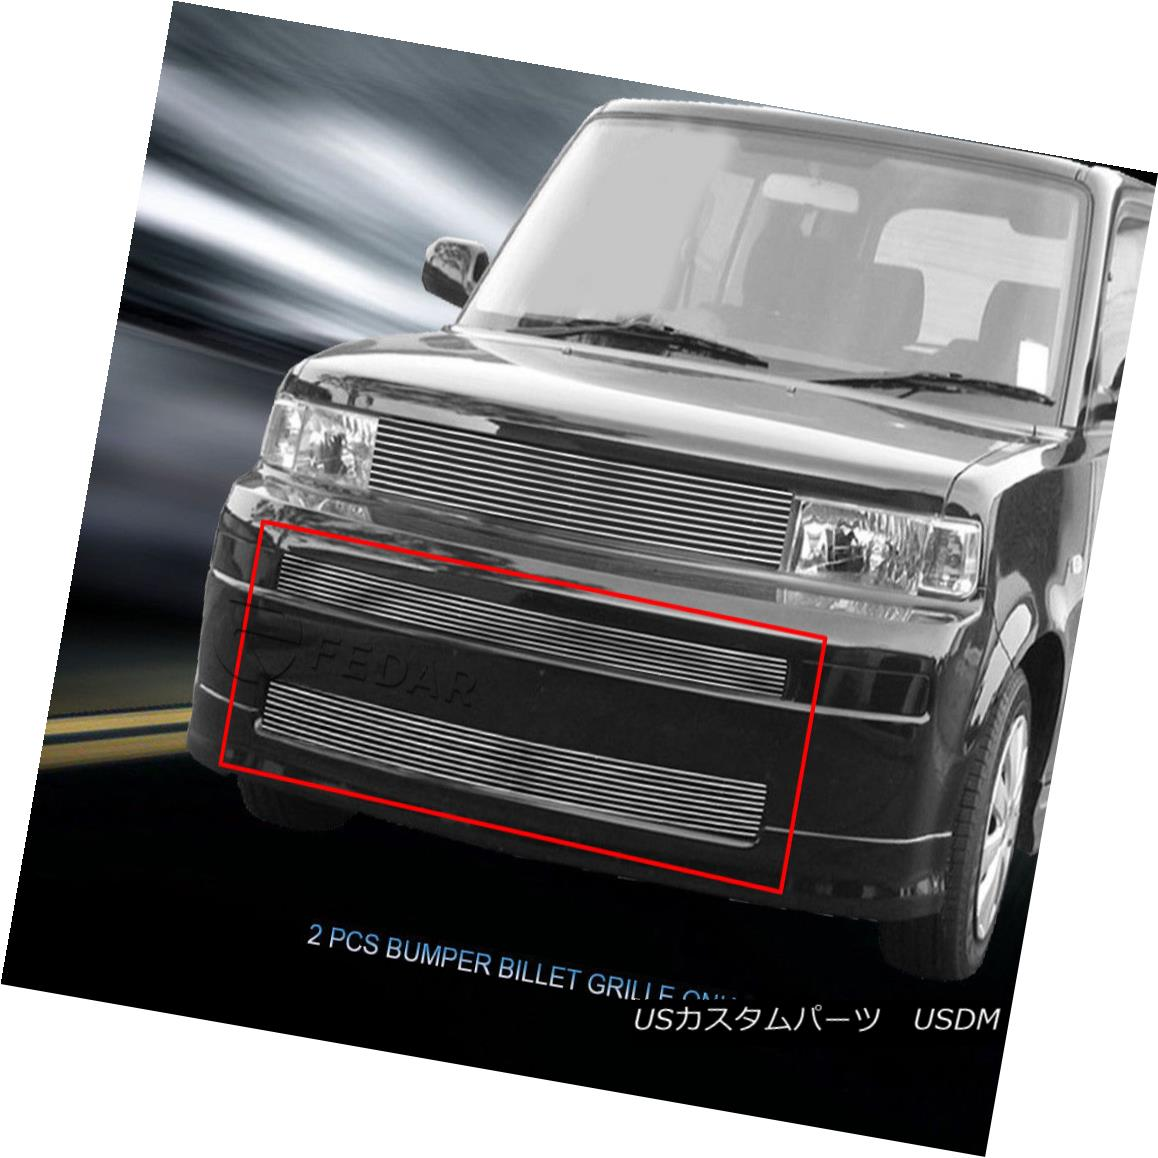 グリル Fedar Fits 03-07 Scion XB Polished Billet Grille Overlay Fedar Fits 03-07 Scion XBポリッシュビレットグリルオーバーレイ